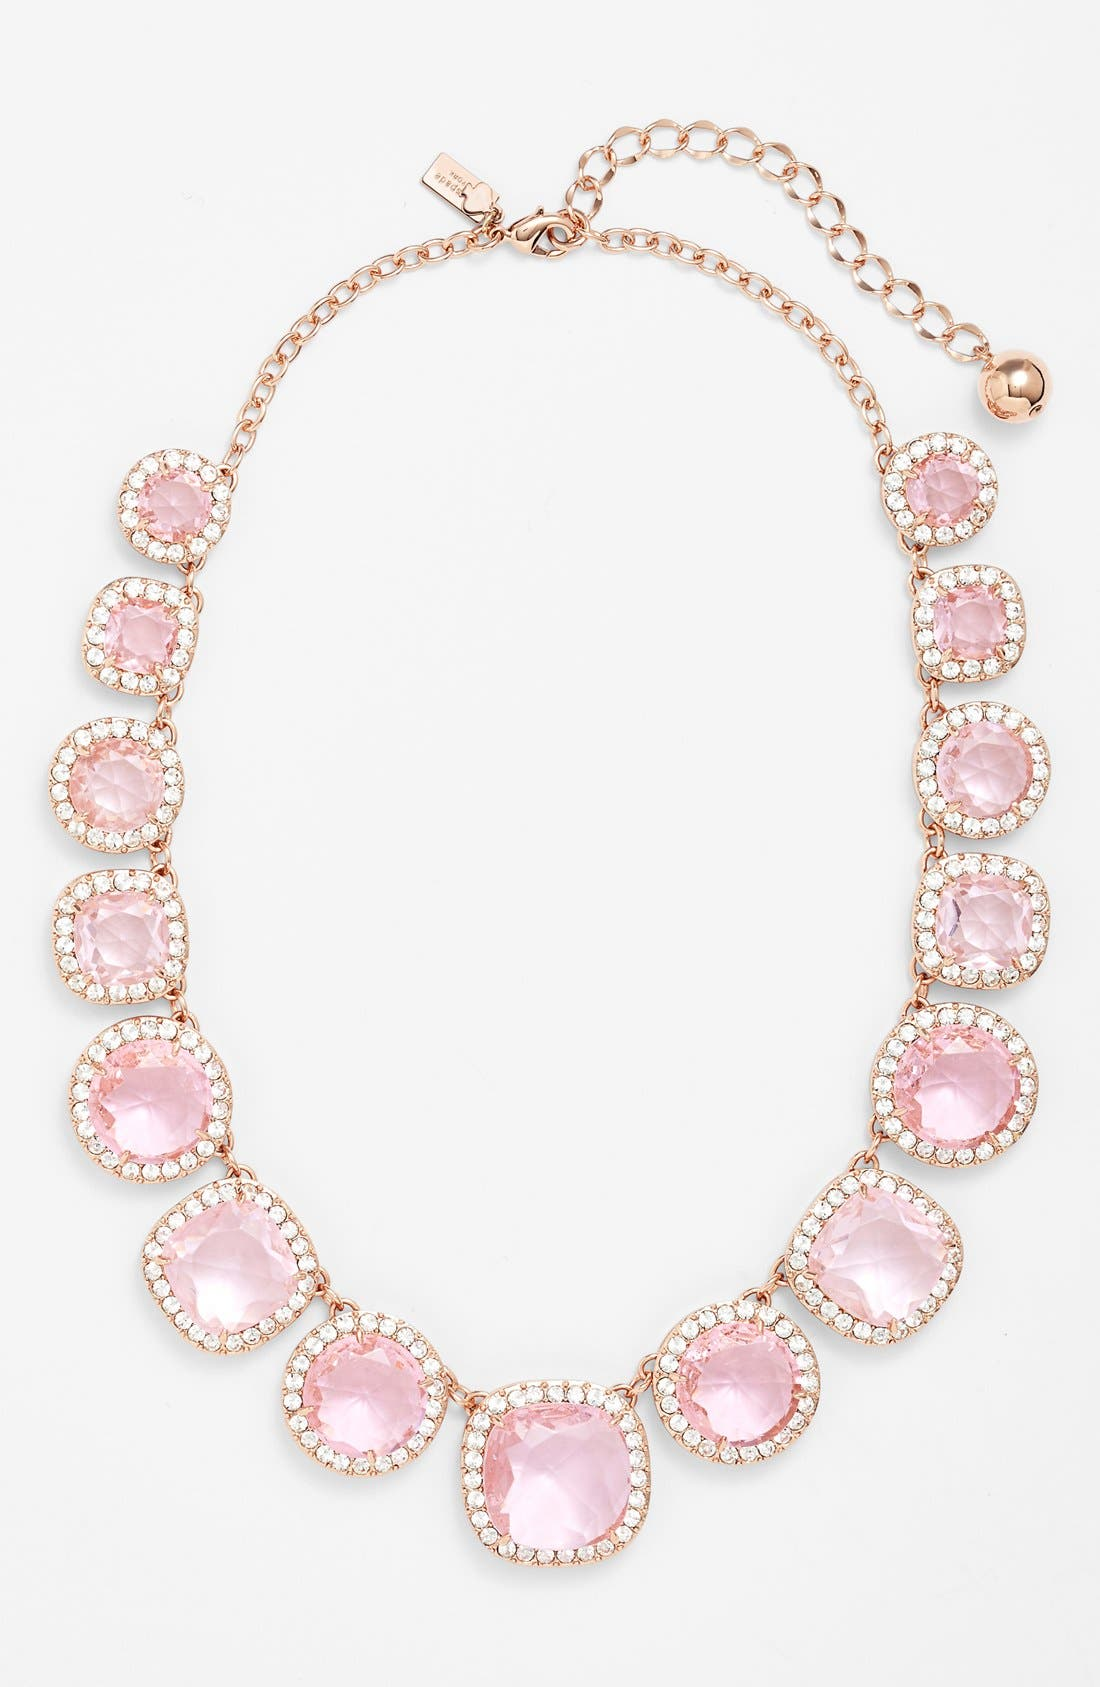 Main Image - kate spade new york 'basket pavé' graduated collar necklace